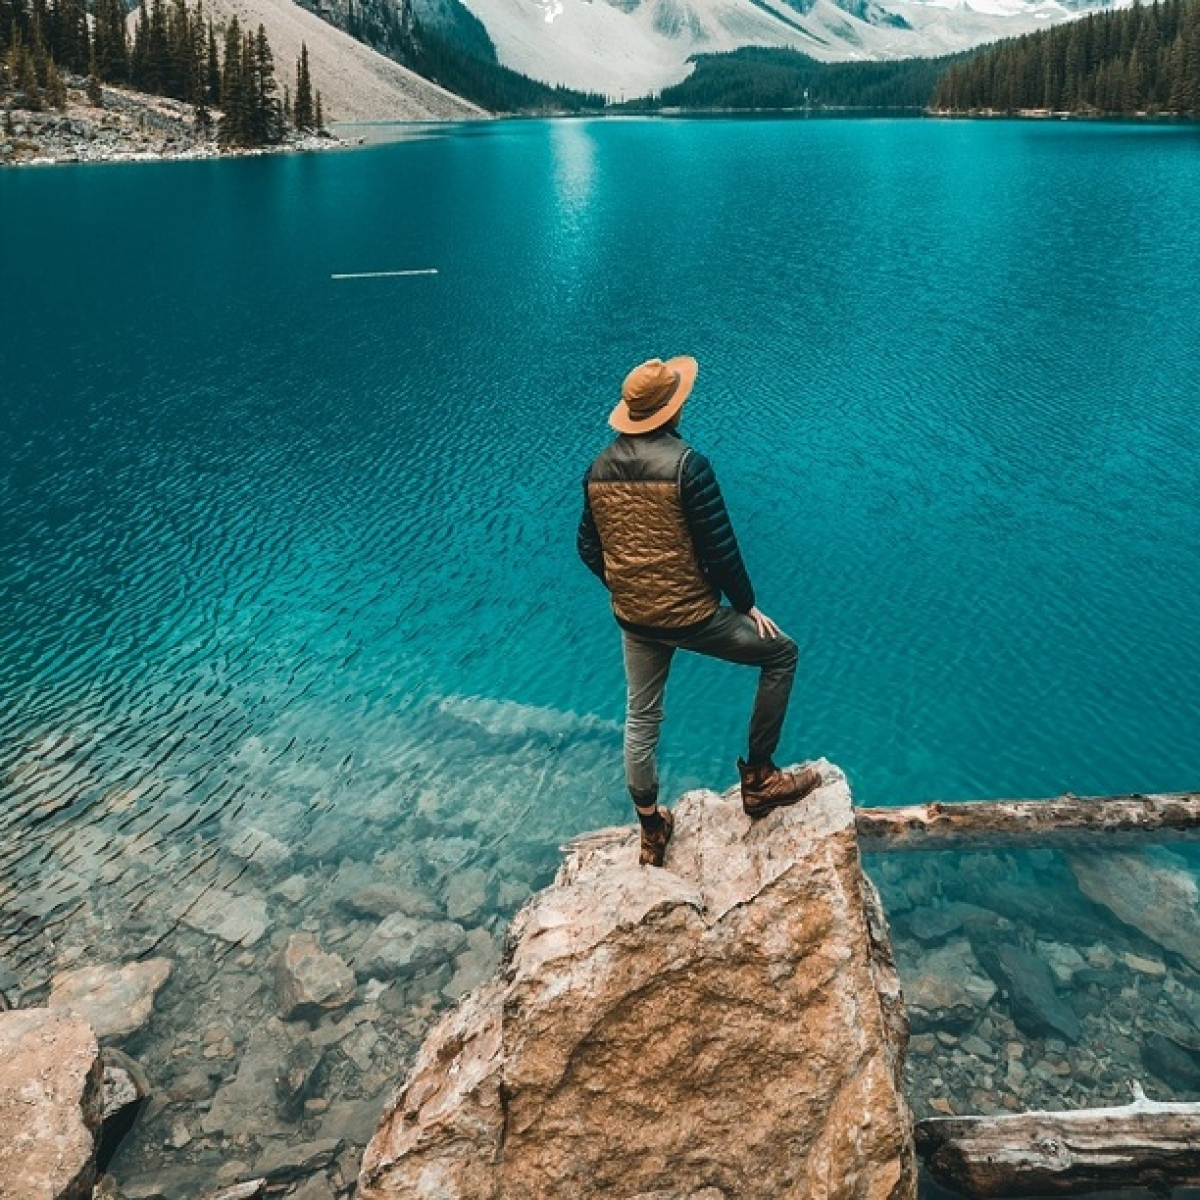 The Hungry Happy Hippy: Couch-surfing amid the pandemic... Travel junkies are finding solace in virtual tours